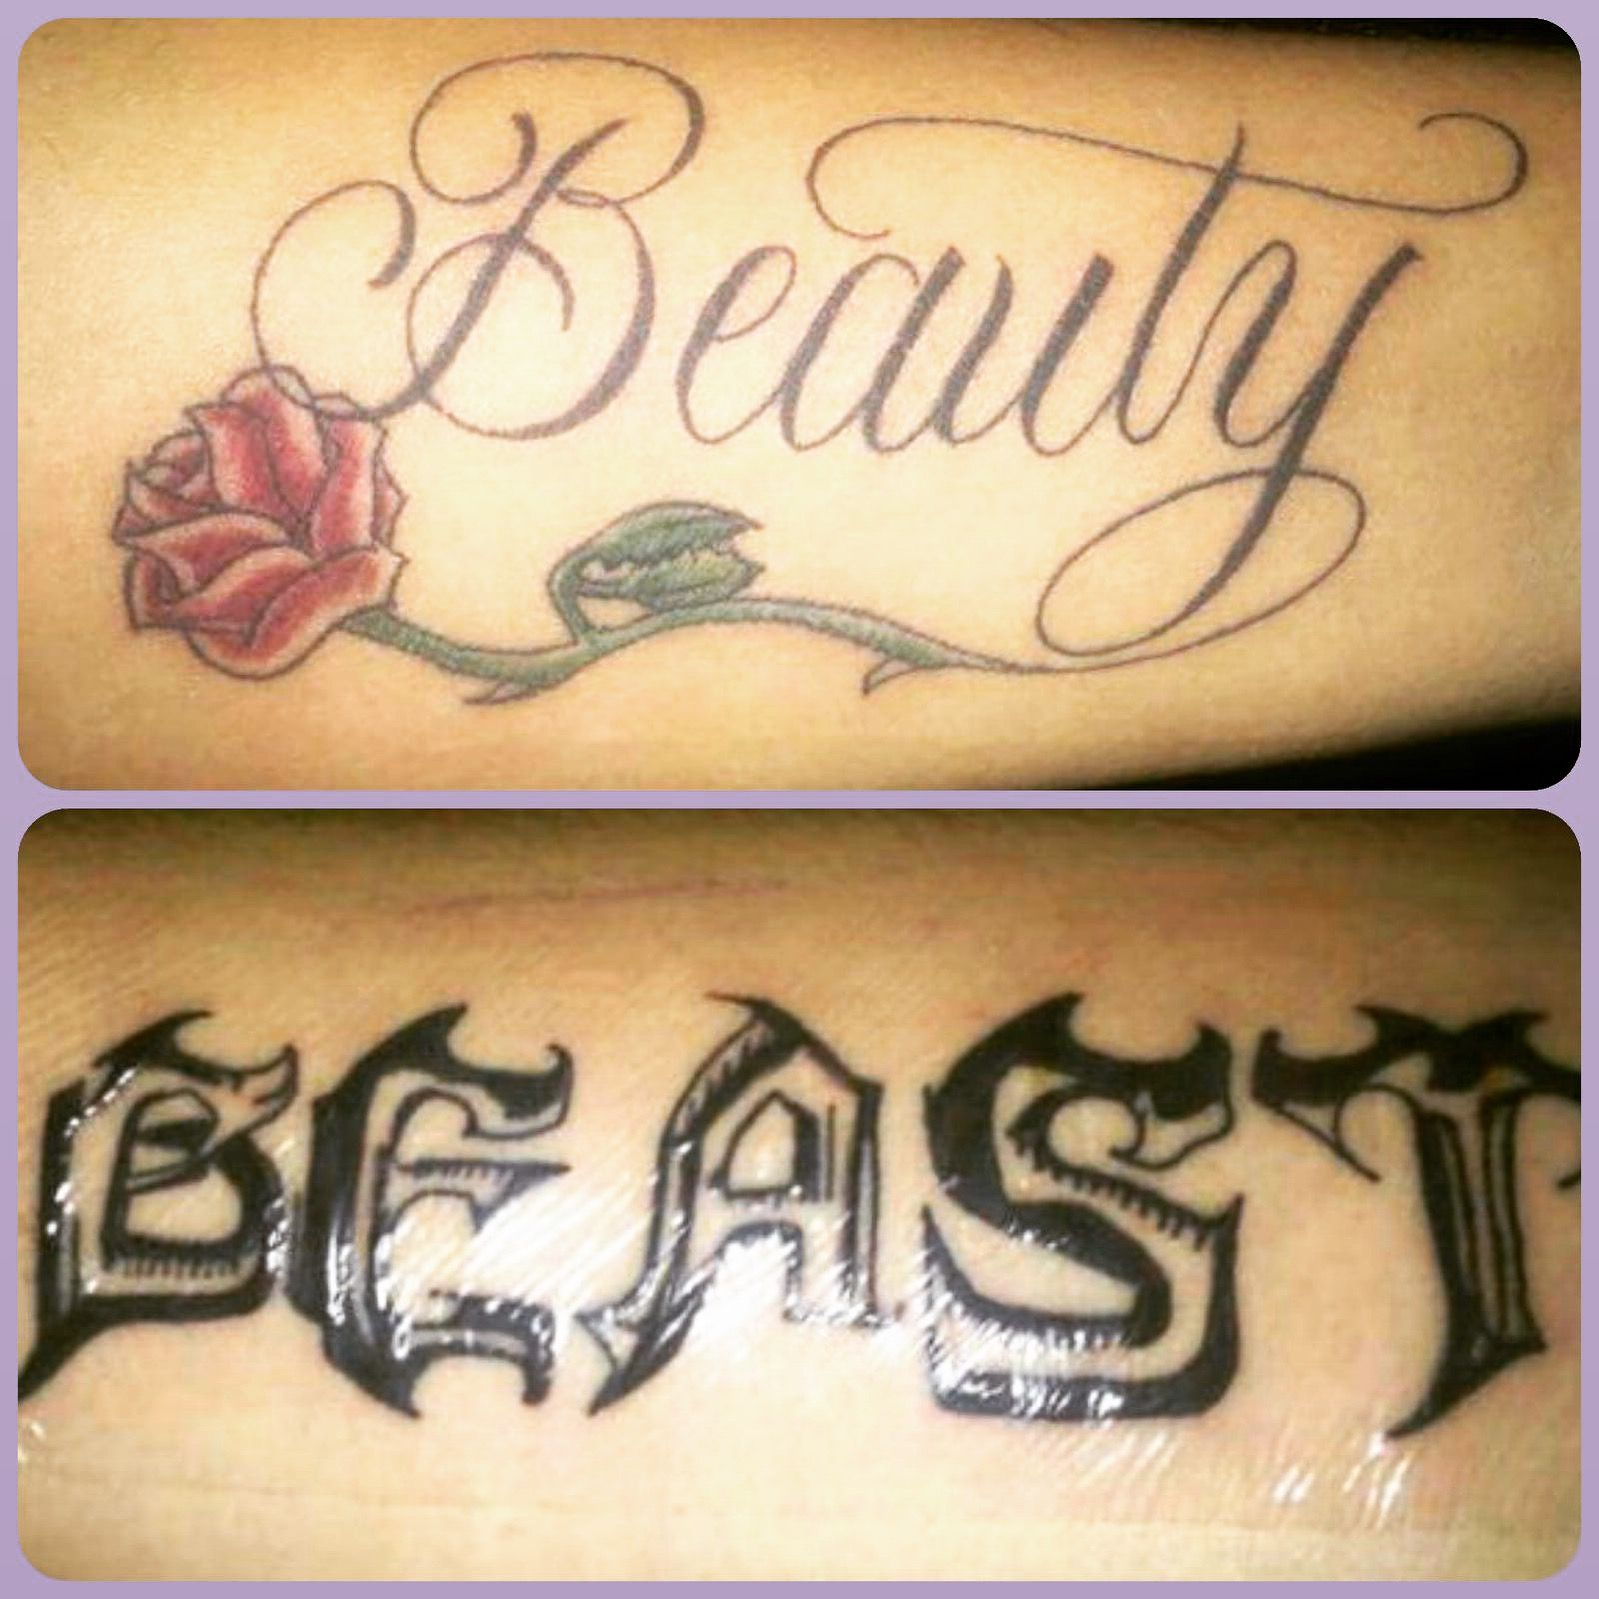 1000 images about tattos on pinterest beauty and the beast henna - Our Beauty And The Beast Tattoos We Just Got